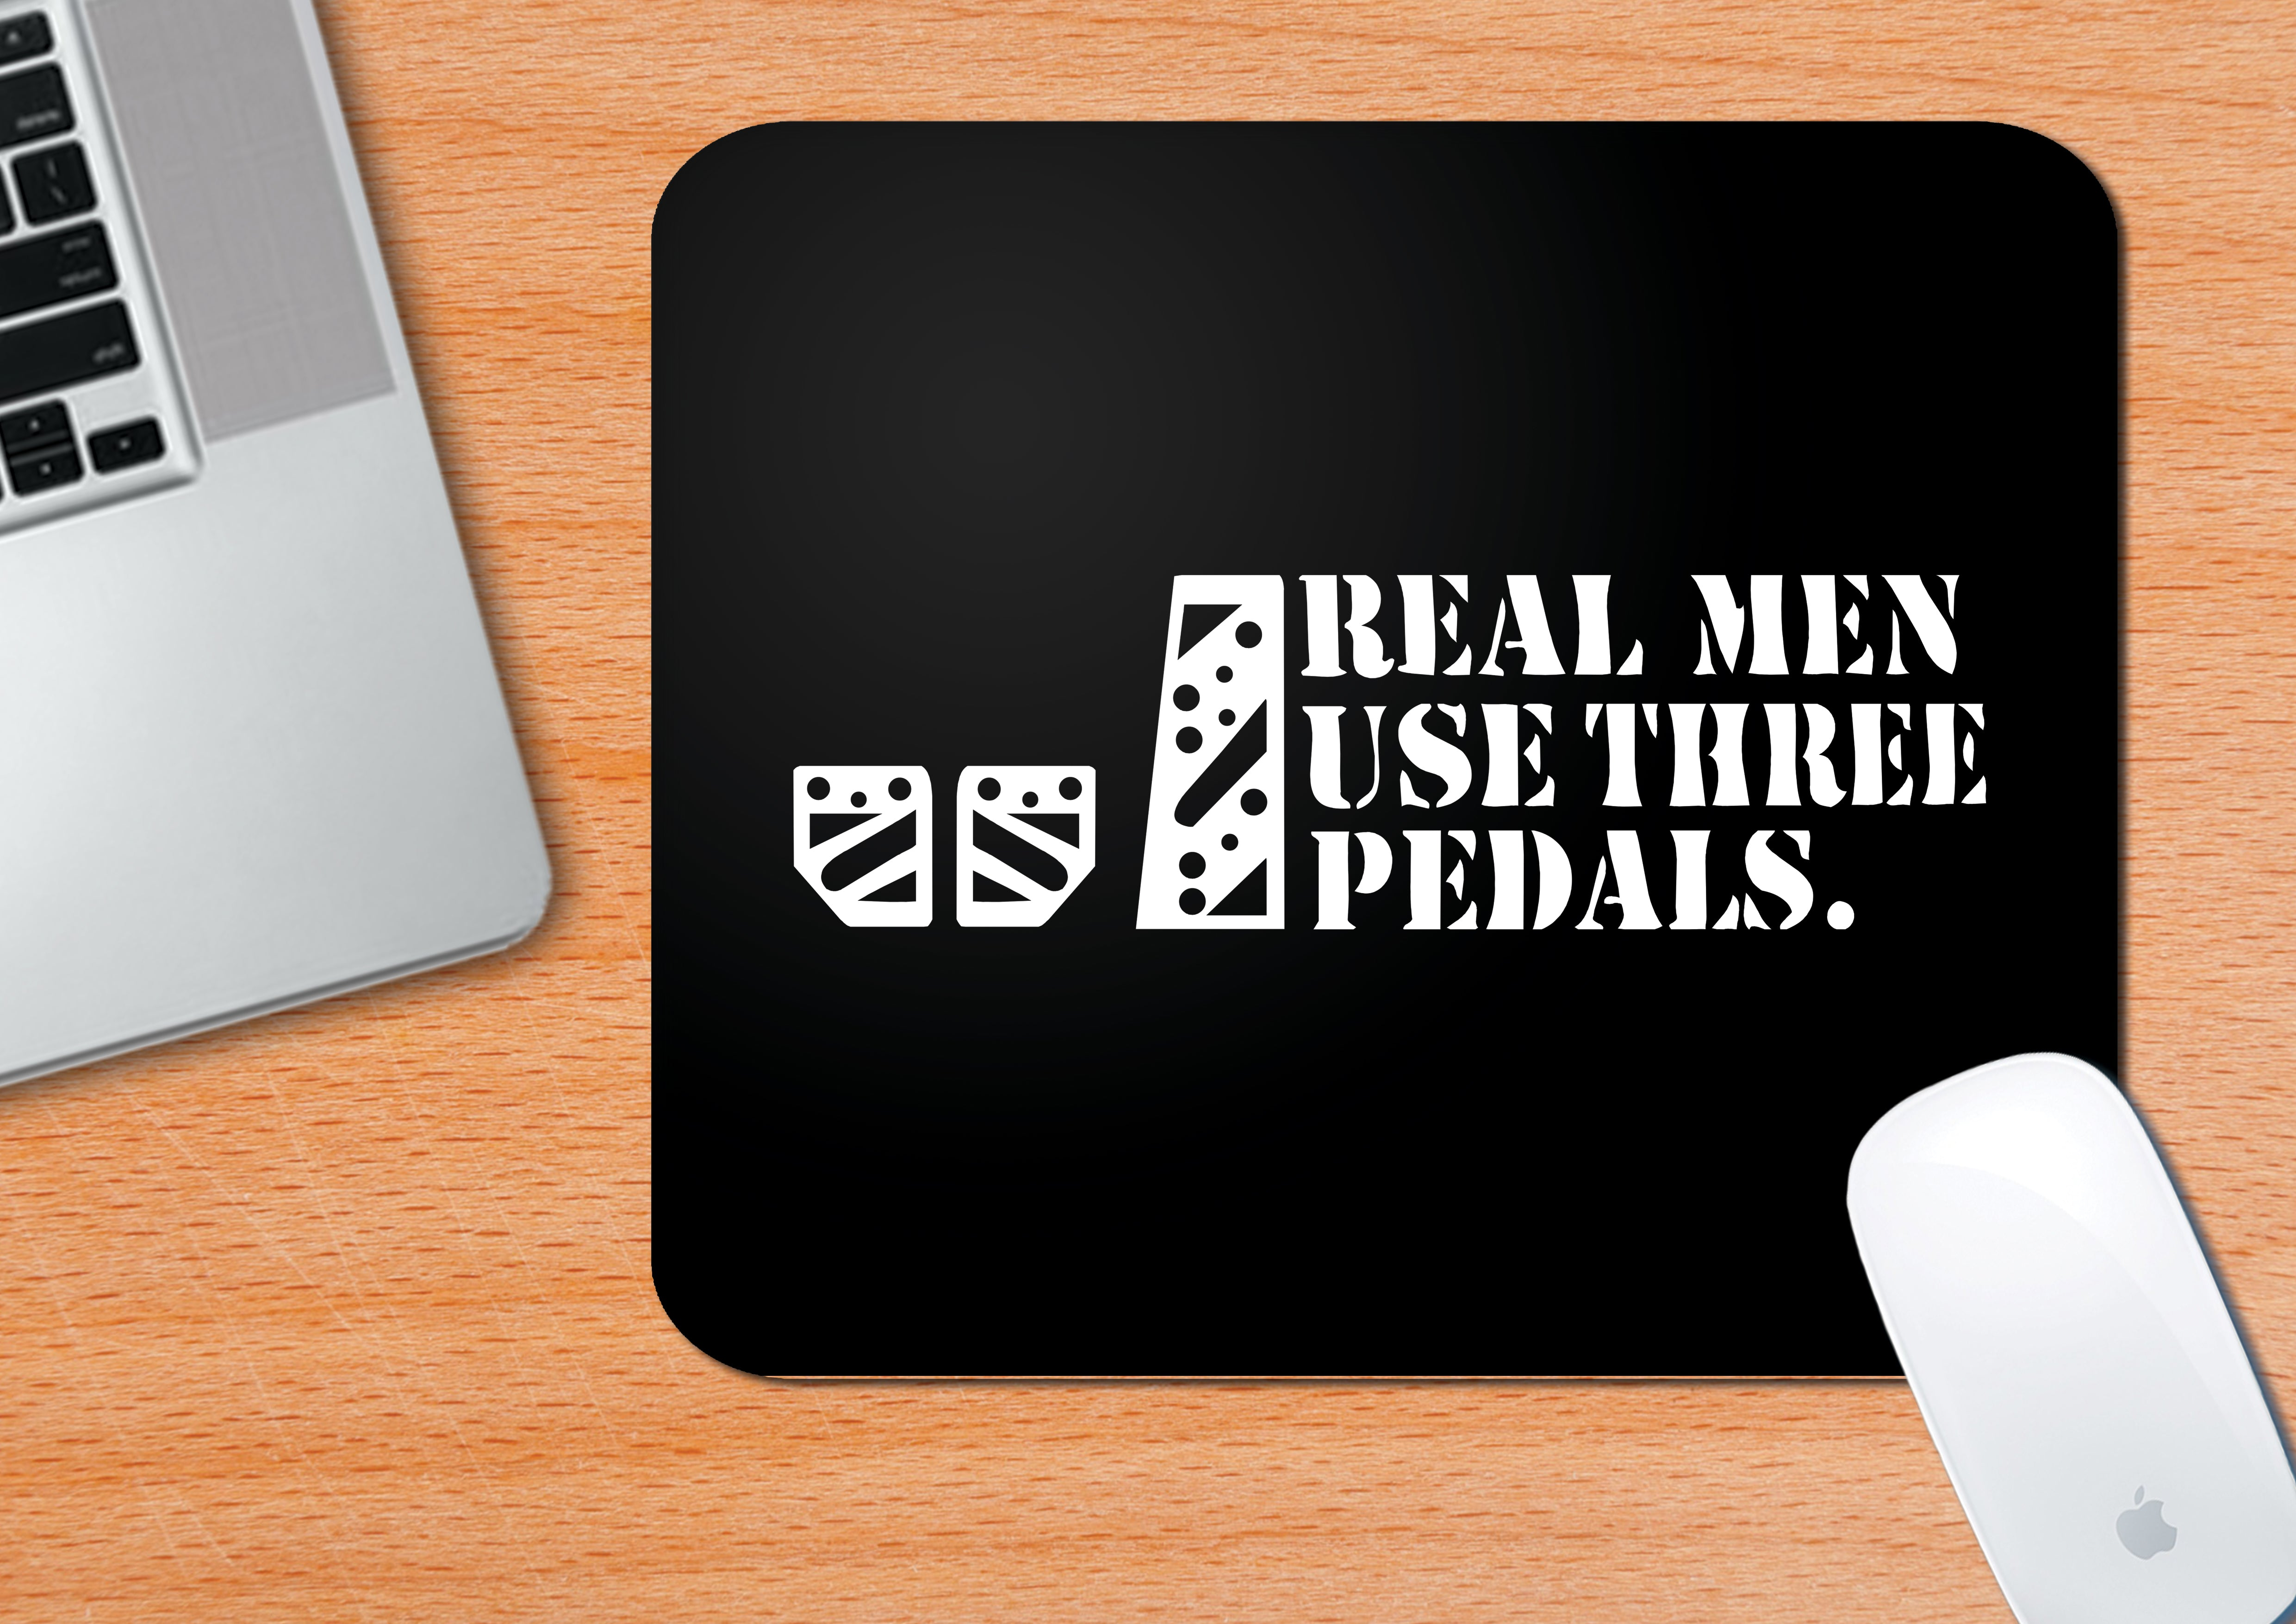 Buy-Real-Men-Use-Three-Pedals-Mouse-Pad| 100kmph